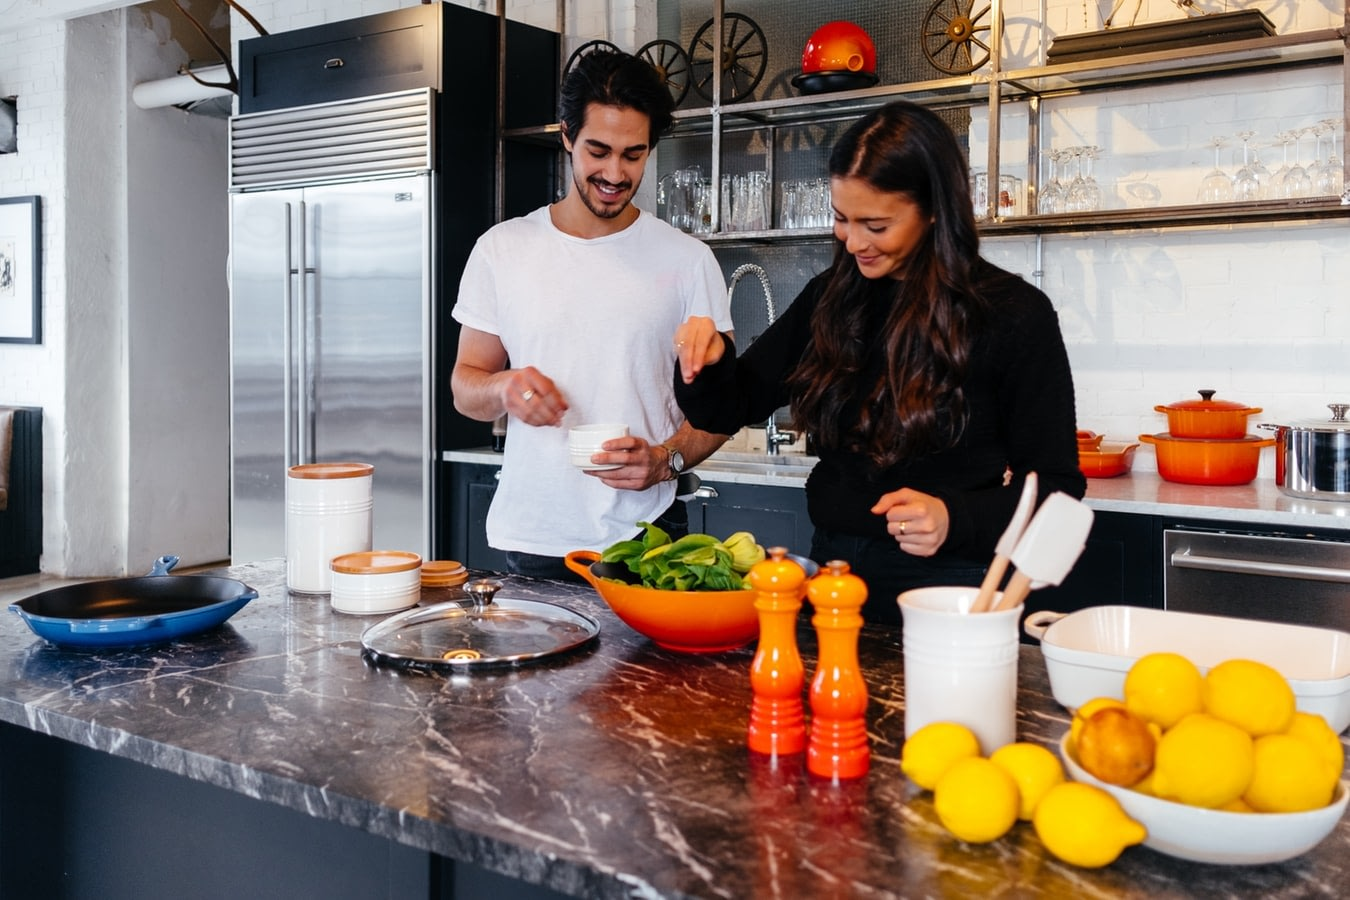 couple making meal together as part of weight loss habits